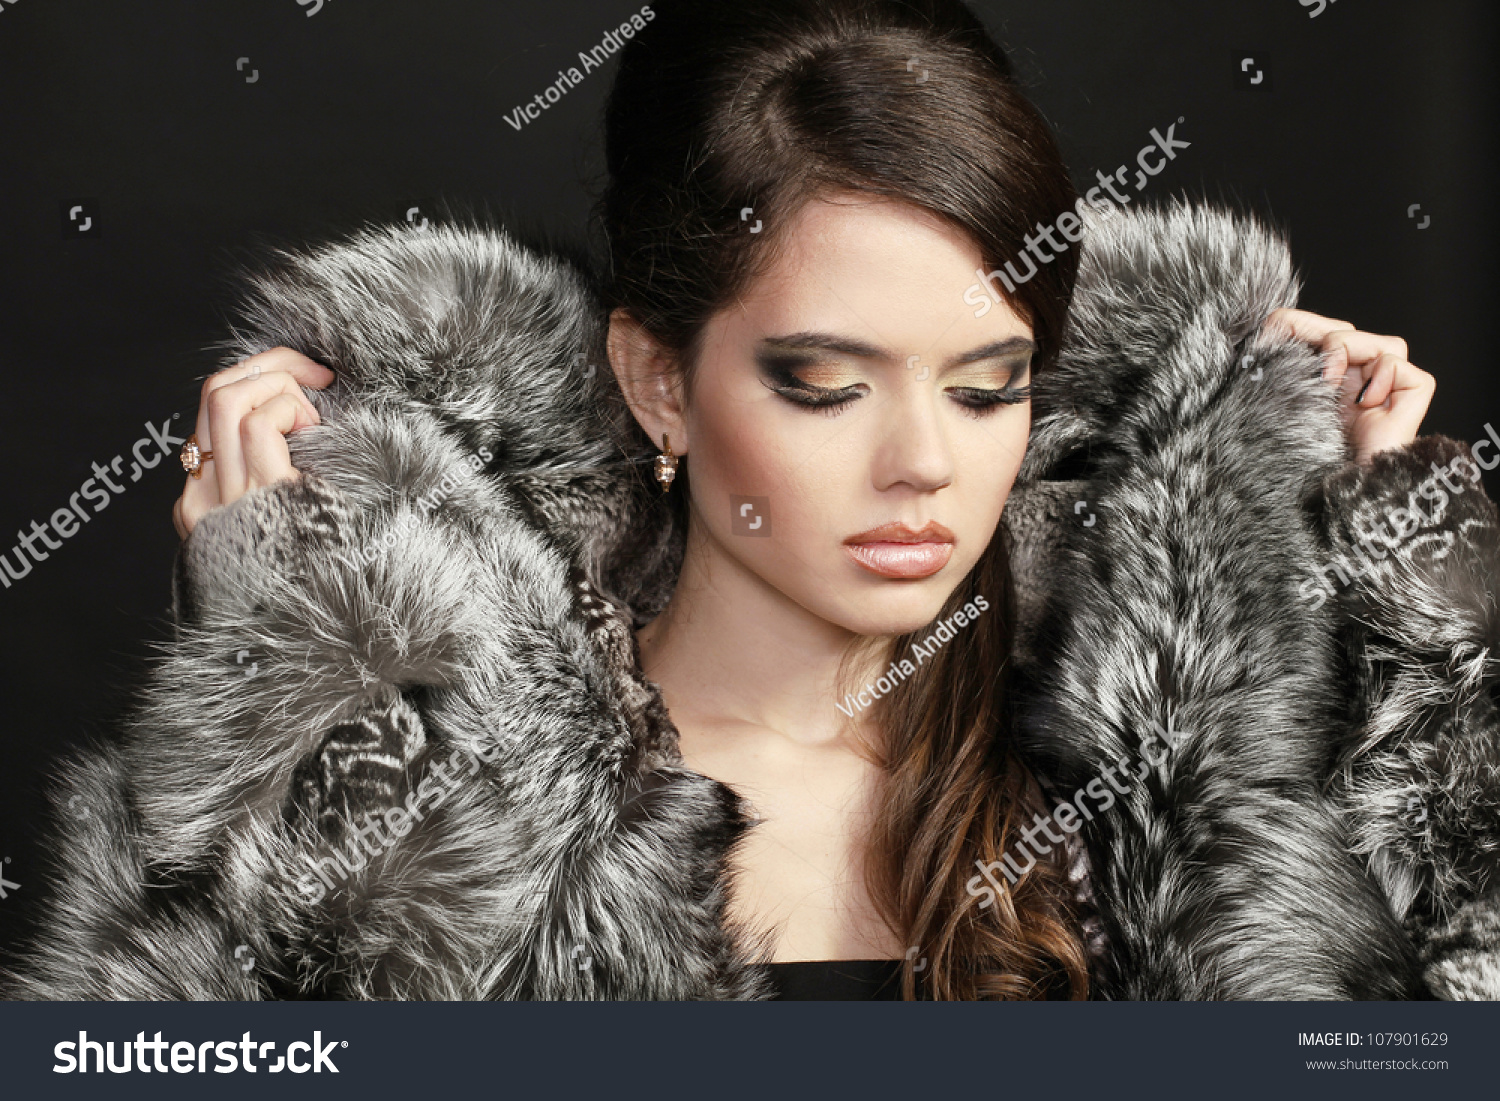 Fashion Woman Fur Coat Lady Portrait Stock Photo 107901629